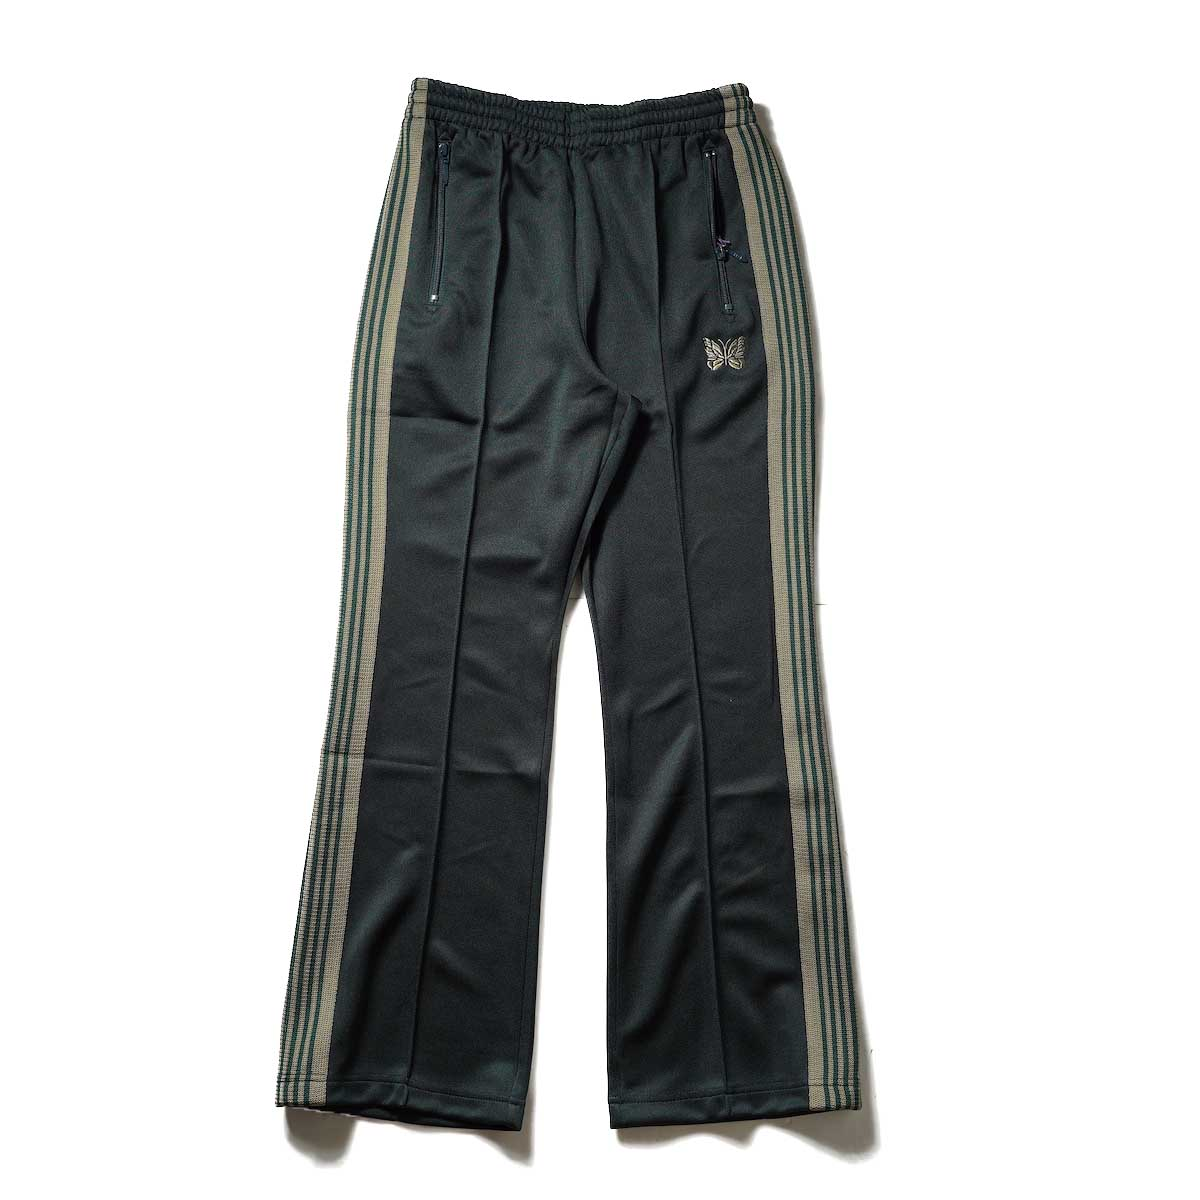 Needles / Boot-Cut Track Pant -Poly Smooth (Dk.Green)正面